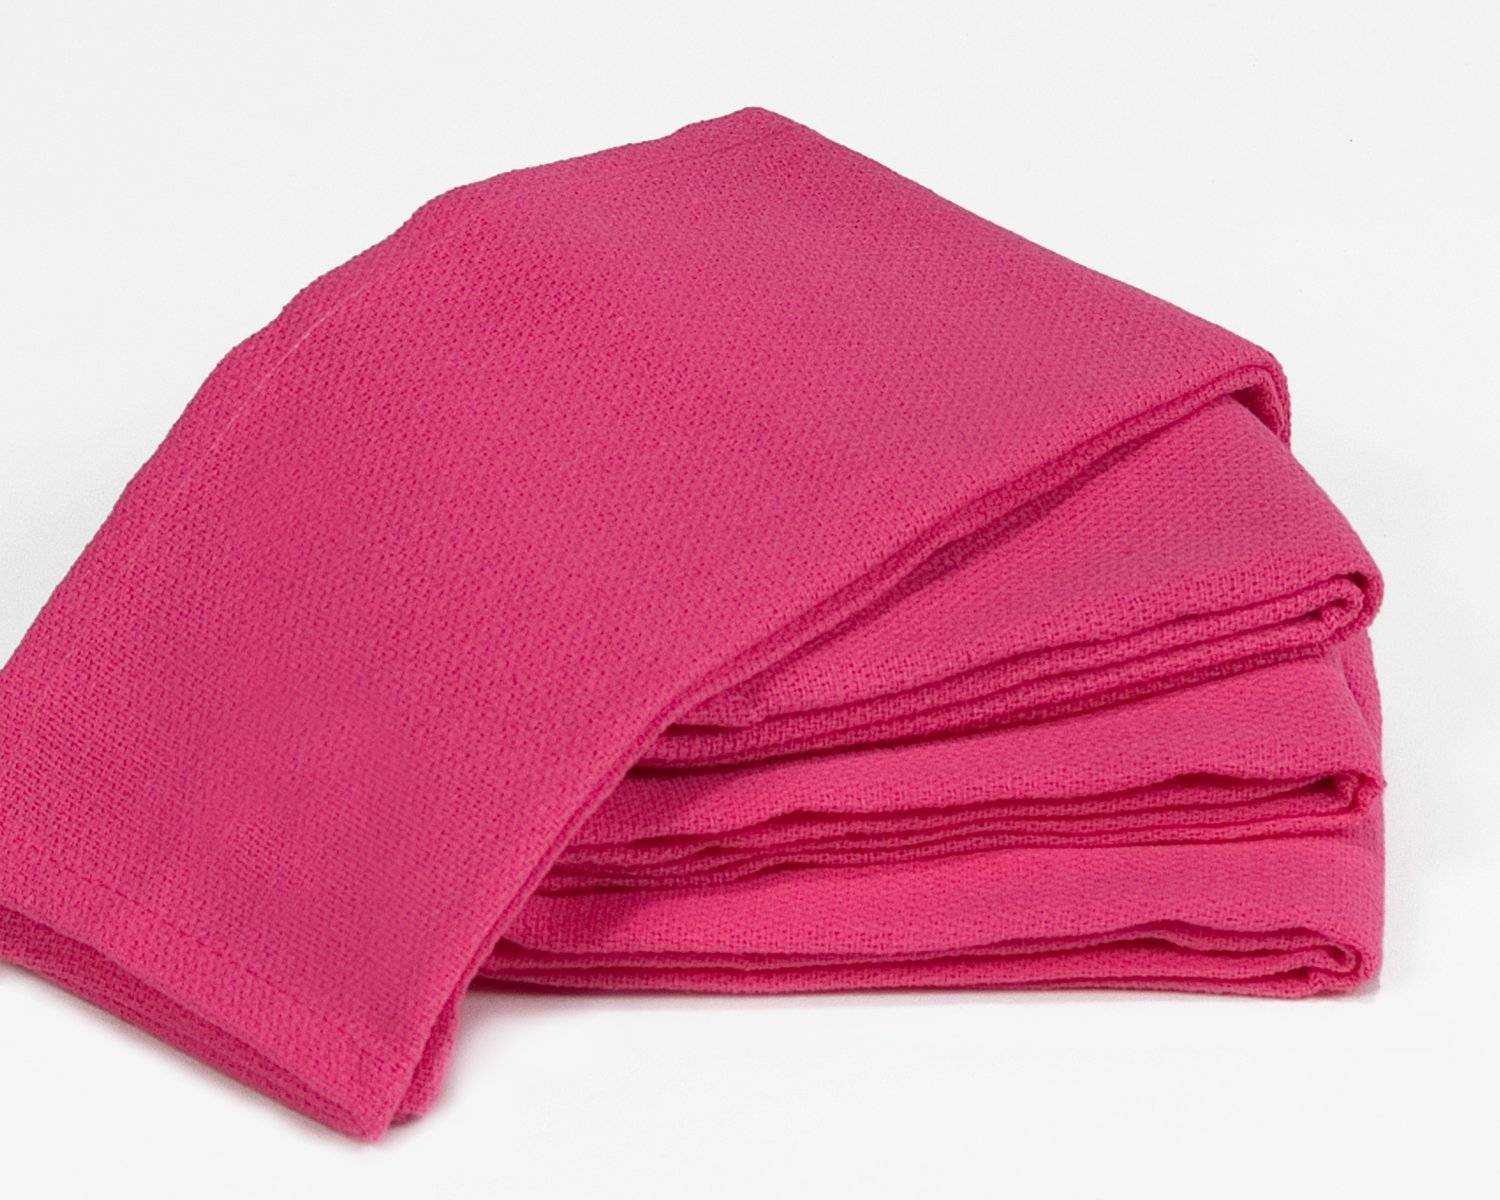 Towels by Doctor Joe Dark Pink (Fuchsia) 16'' x 25'' New Surgical Huck Towel, Pack of 12